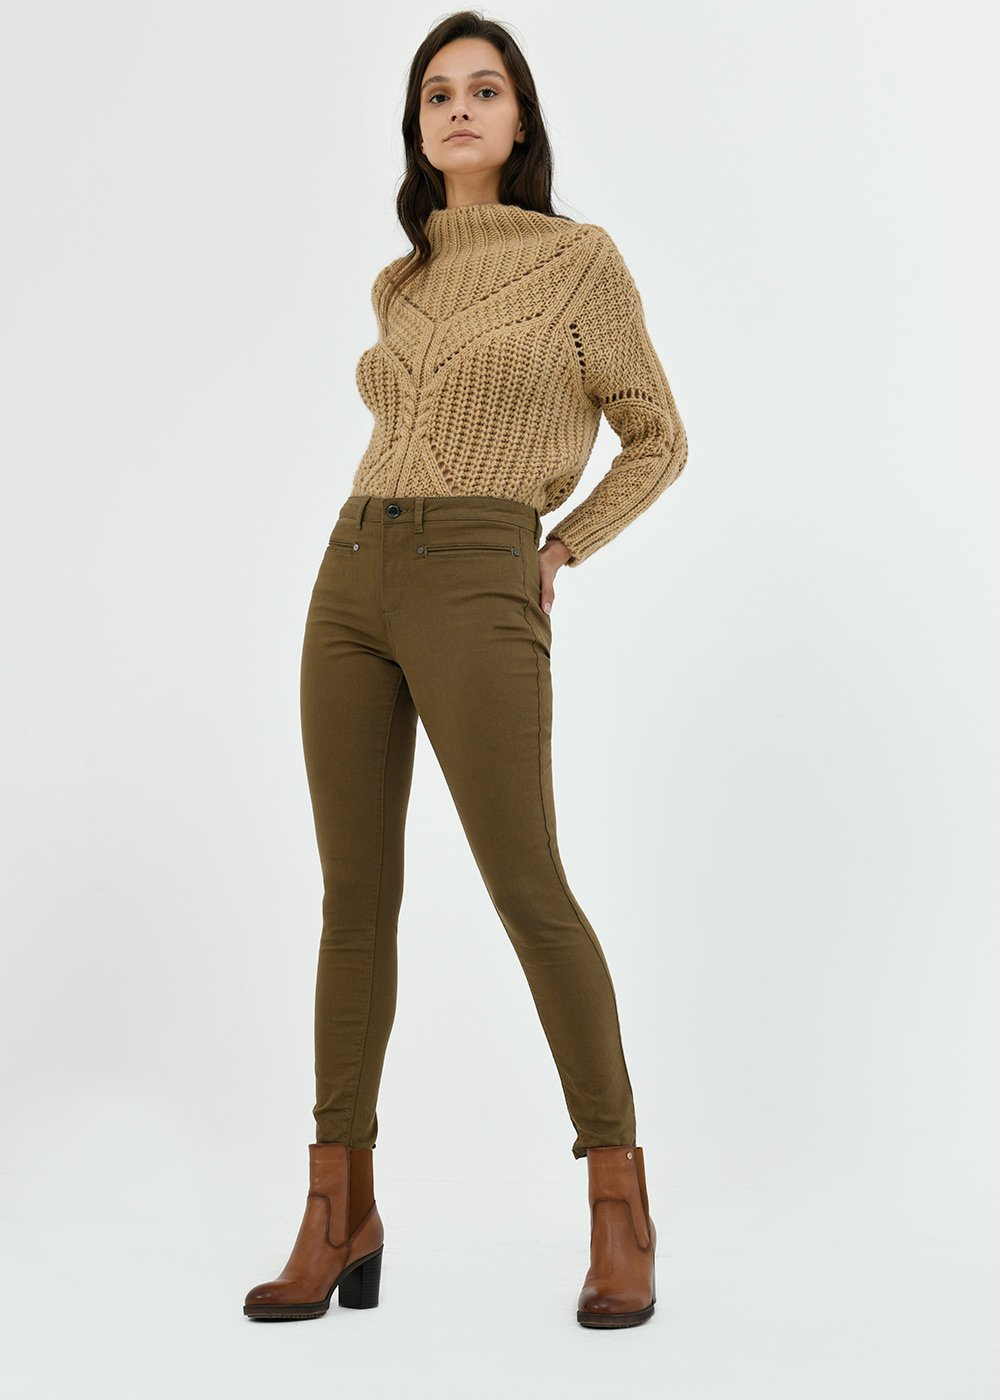 Pantalone Paul con tasca a filetto - Bronzo - Donna